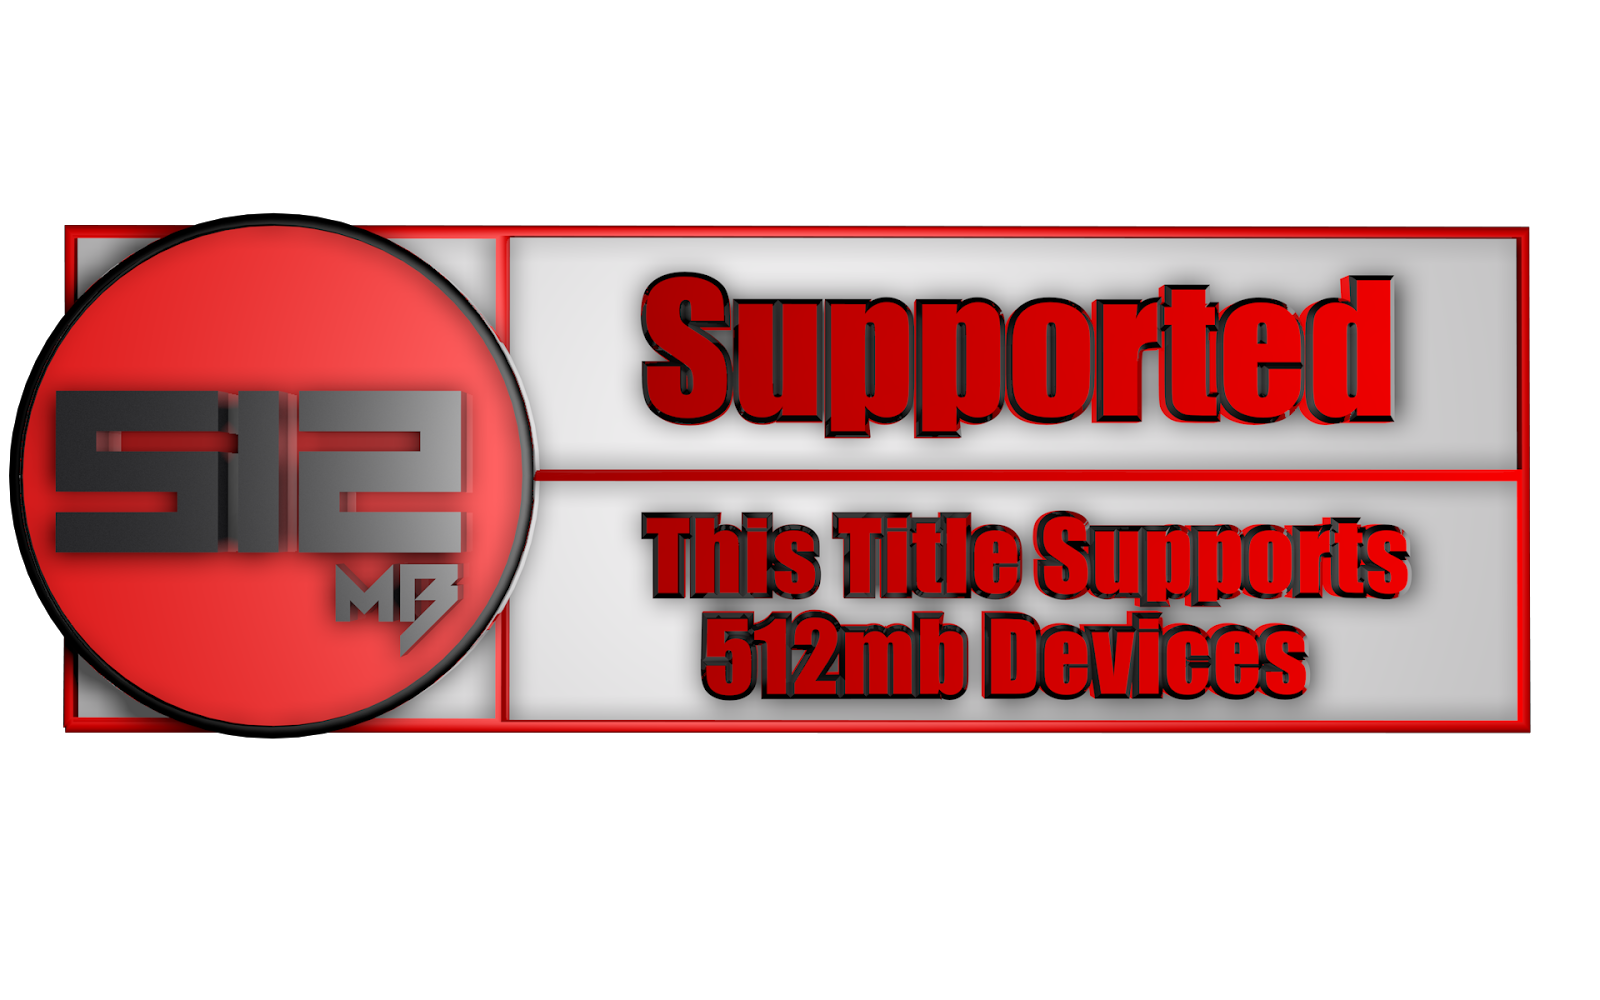 support for 512MB devices